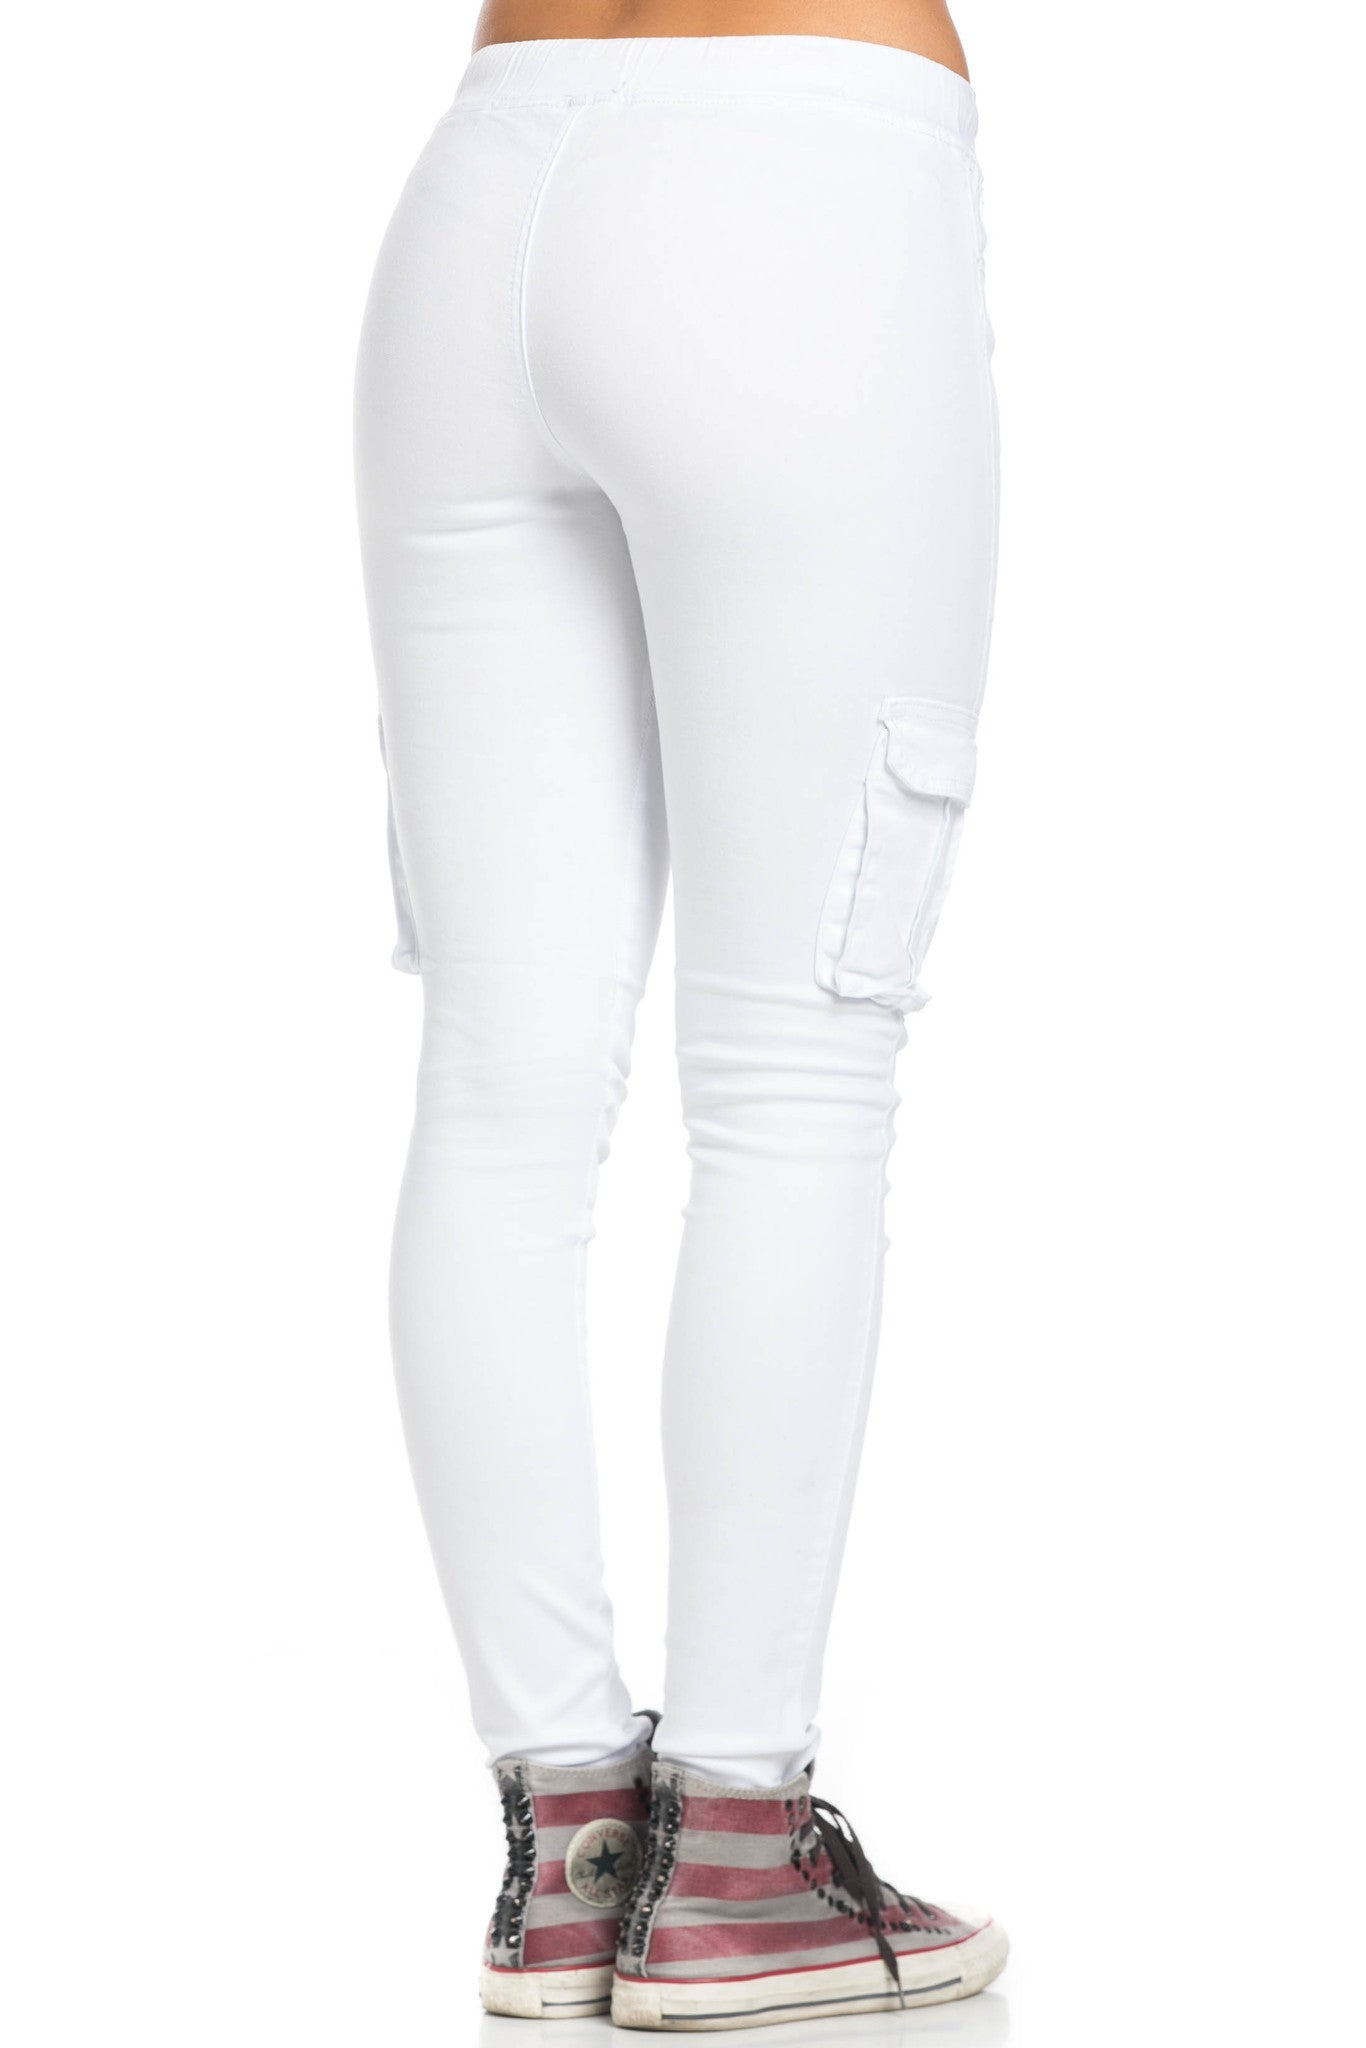 Mid Rise Skinny White Cargo Pants - Pants - My Yuccie - 5